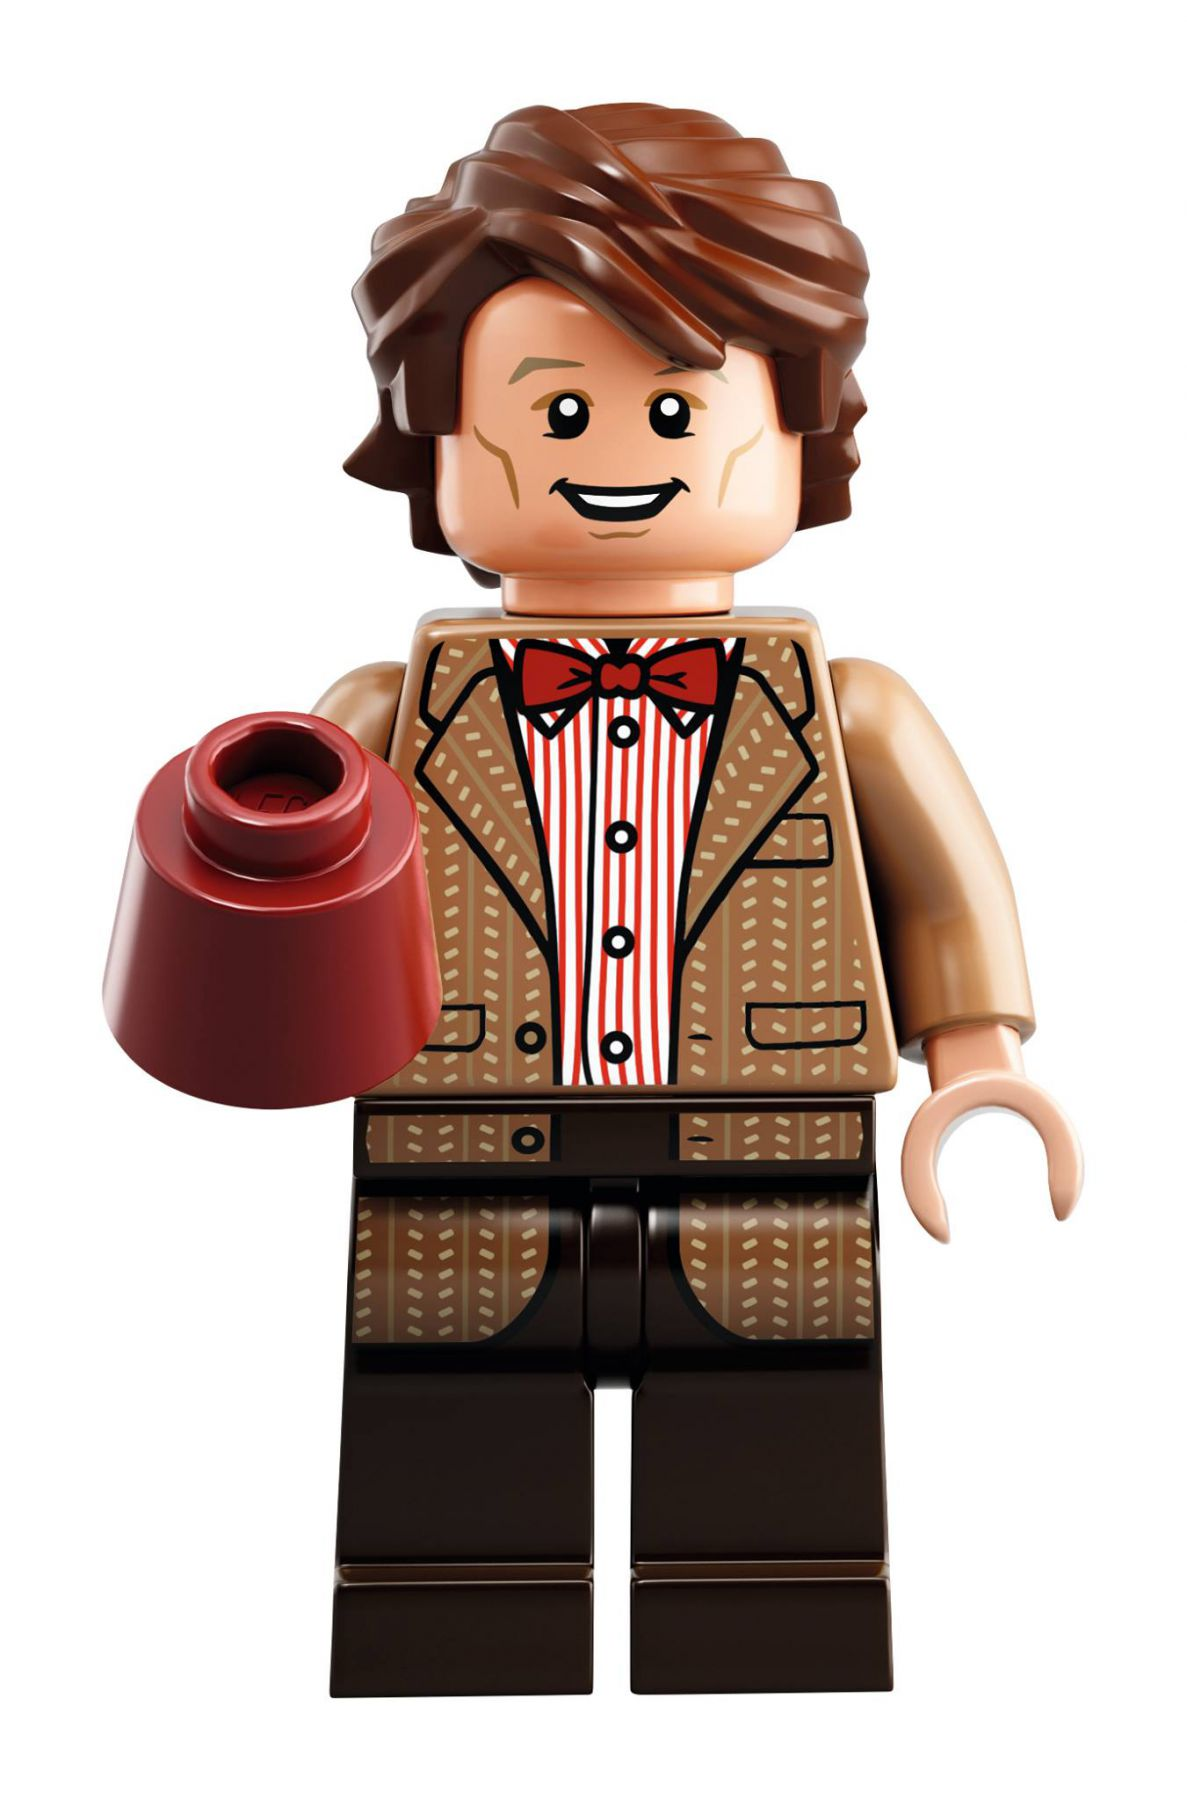 LEGO Ideas 21304 Doctor Who 21304-1_doctor_who_img08.jpg